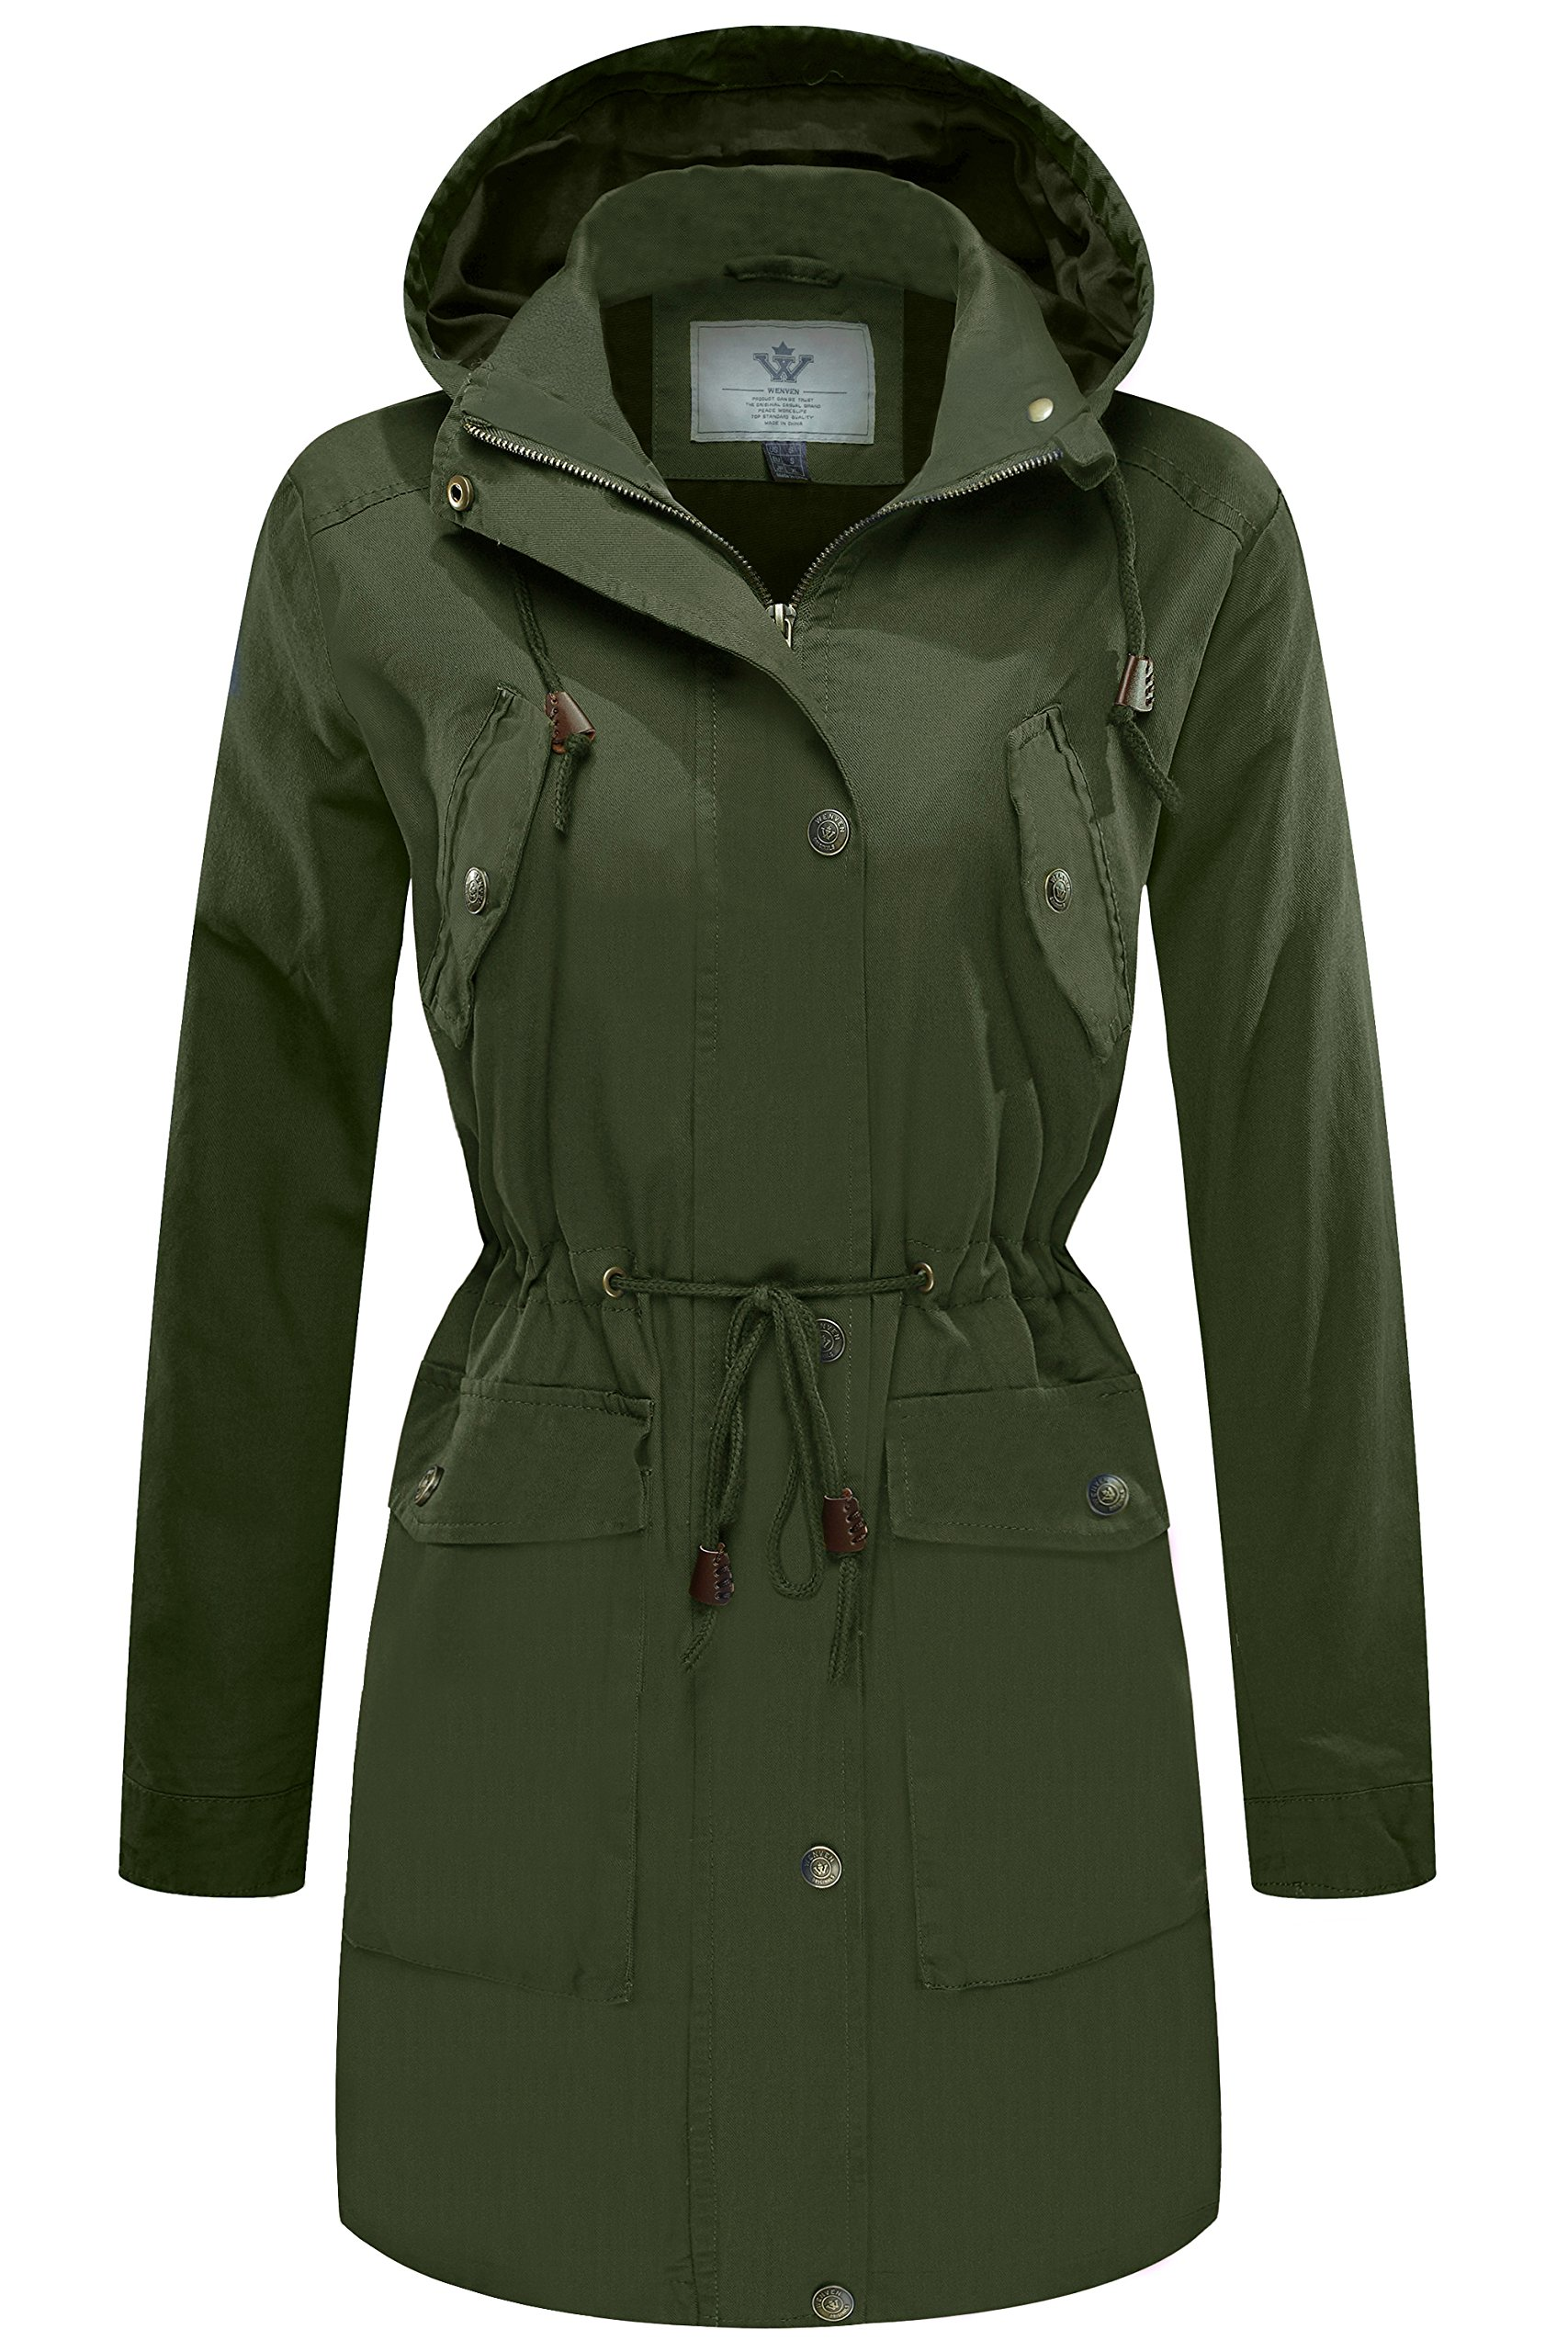 WenVen Women's Military Washed Twill Hooded Utility Anorak Jacket Green, Medium by WenVen